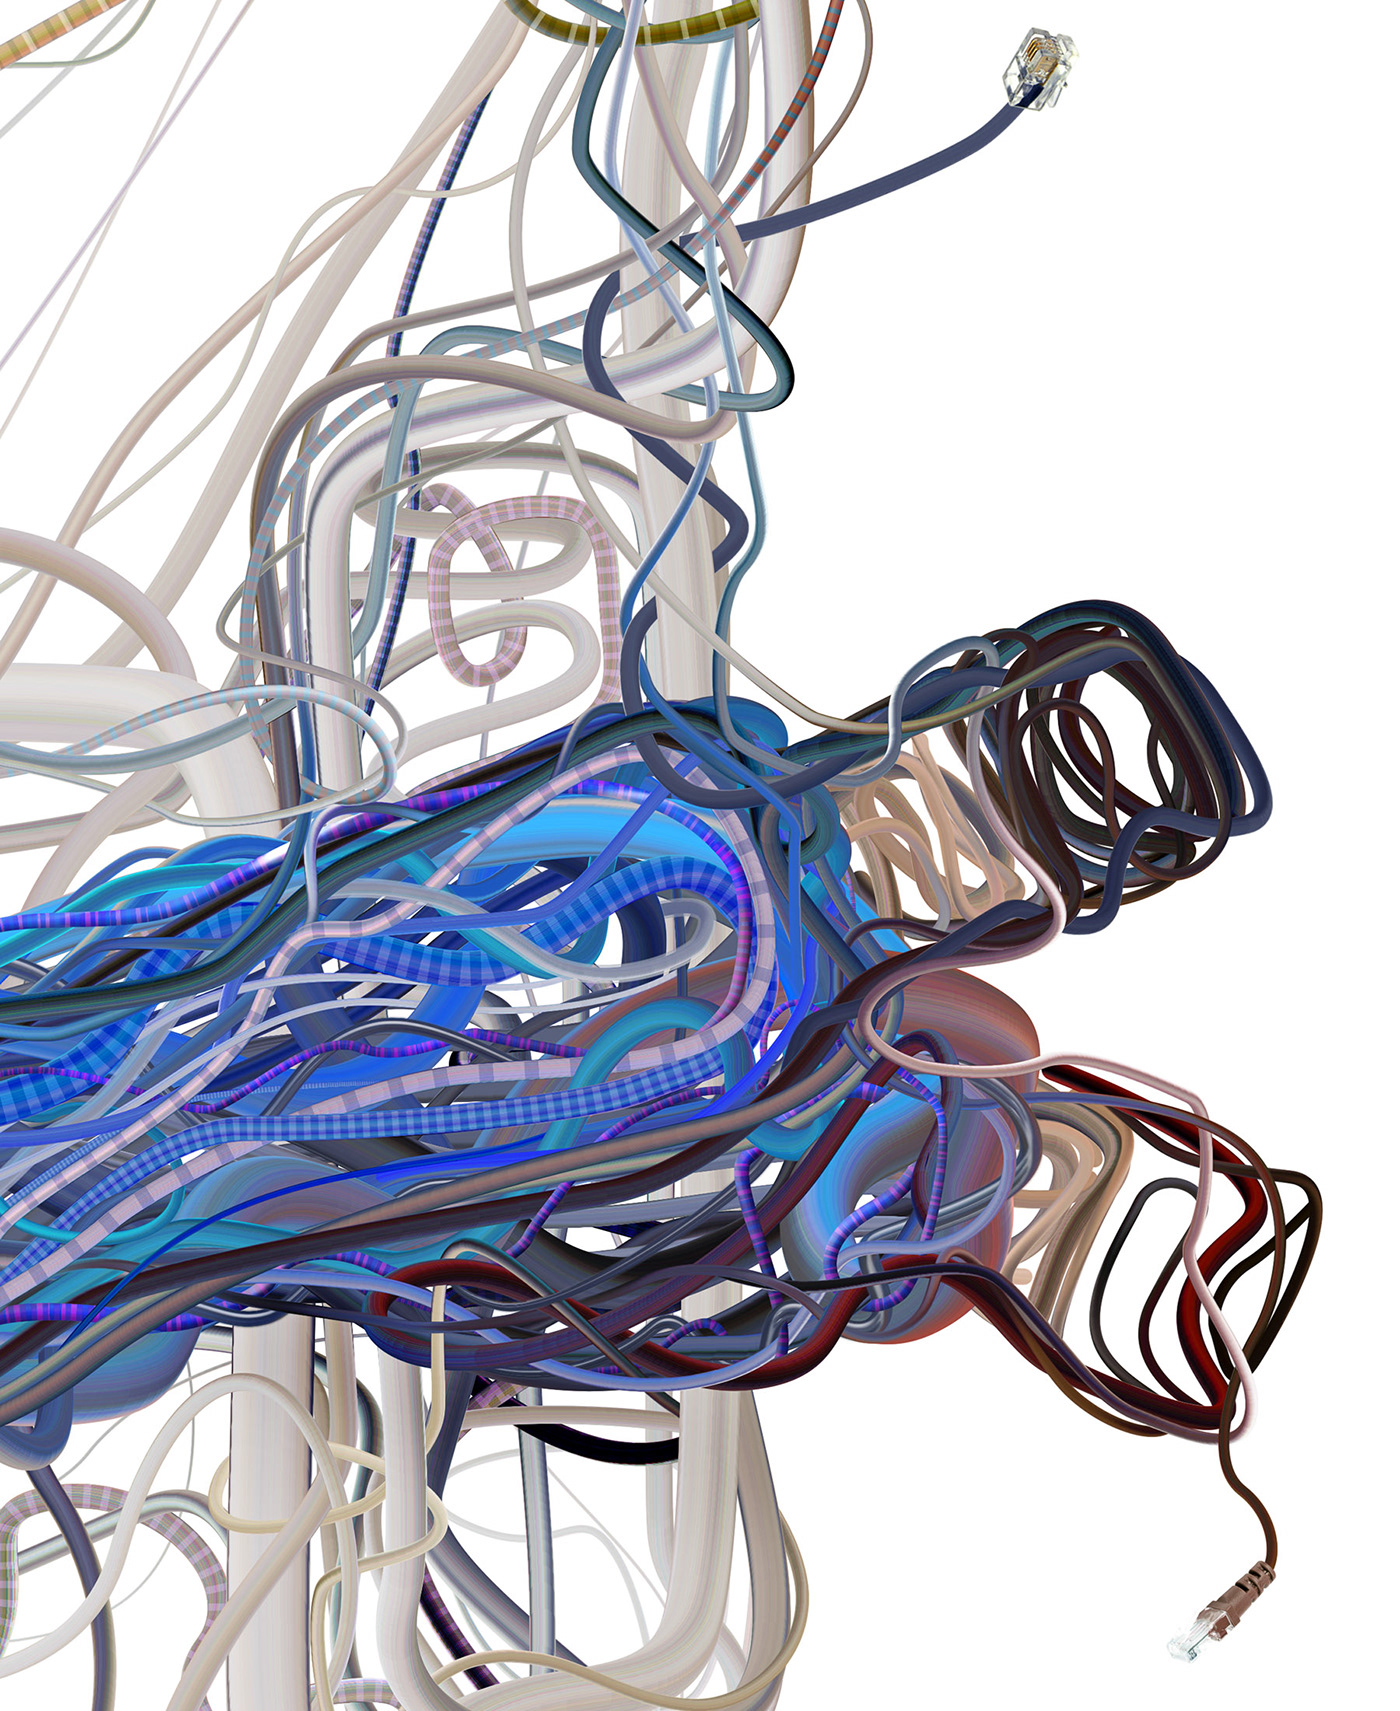 iPad iphone apple mosaic visual tsevis Synthetic studio artist photoshop graphicdesign digital experimental art charis tsevis Hero newspaper magazine media information mass media appstore Wires Wired techno freak geeky geeks Steve Jobs the new york times cupertino California Silicon Valley